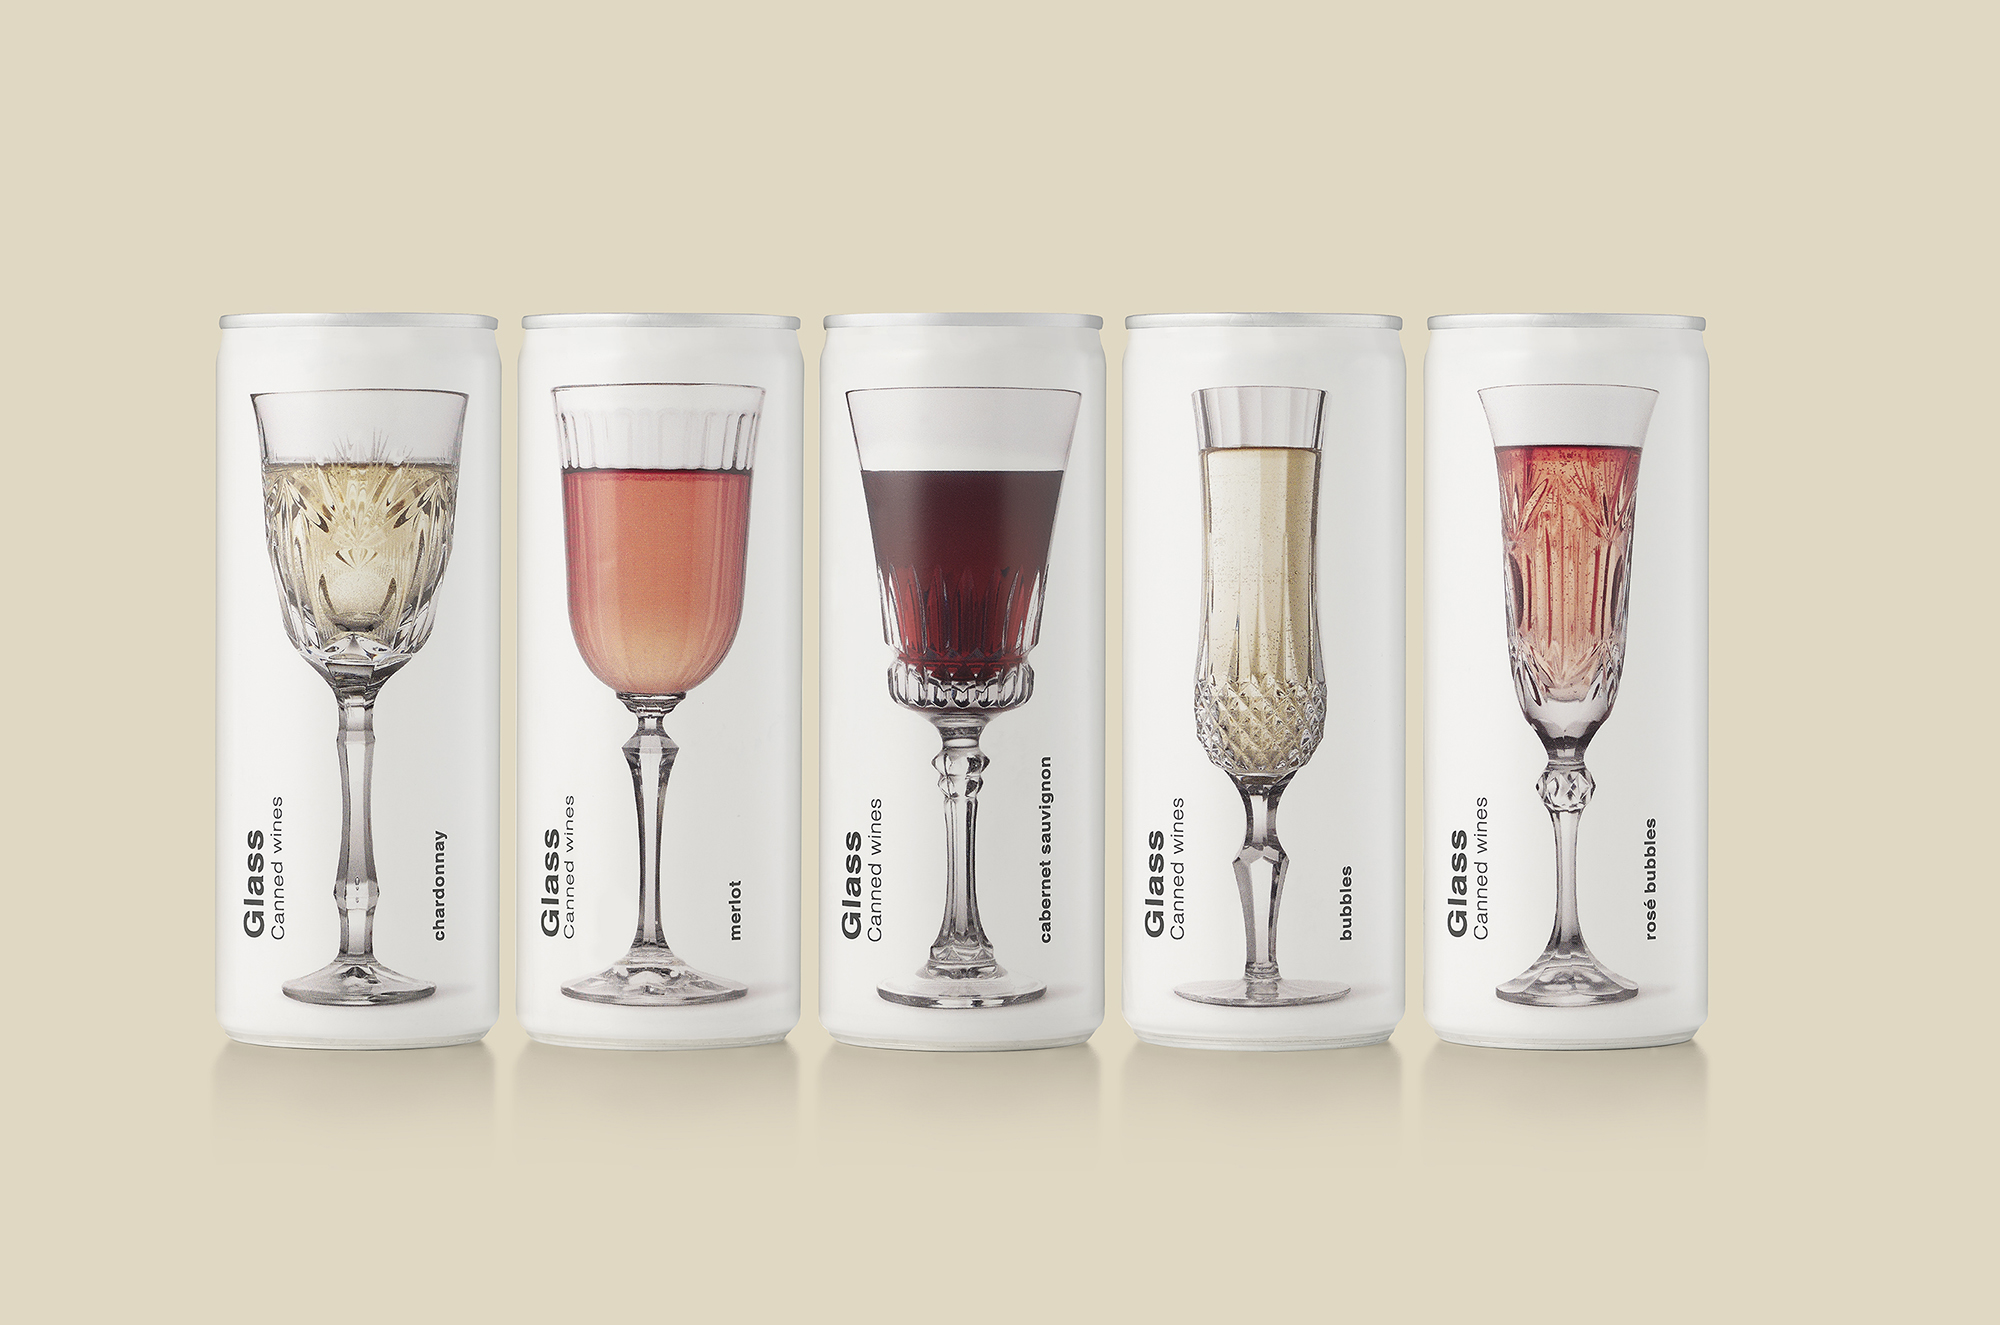 Puigdemont Roca Create Glass Canned Wines for Aluvinum